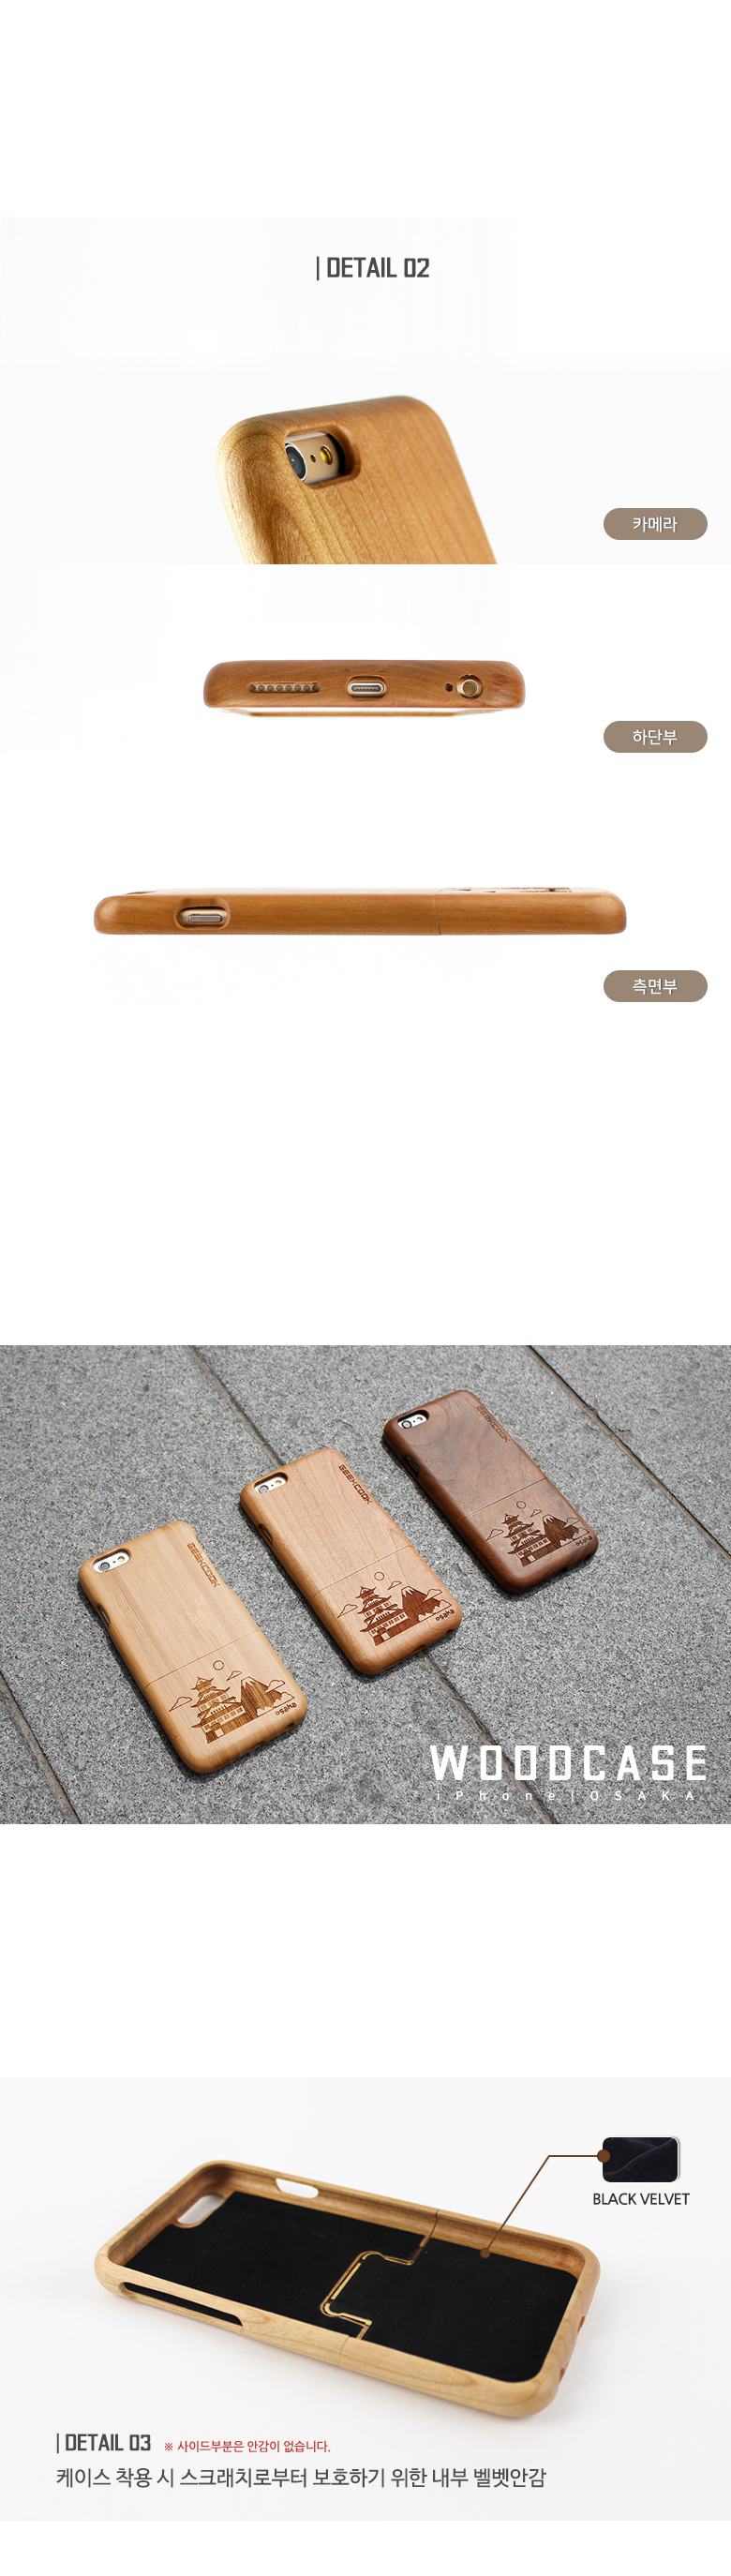 [ BISKET ] iPhone 6/6plus Landmark Wood Case Osacar